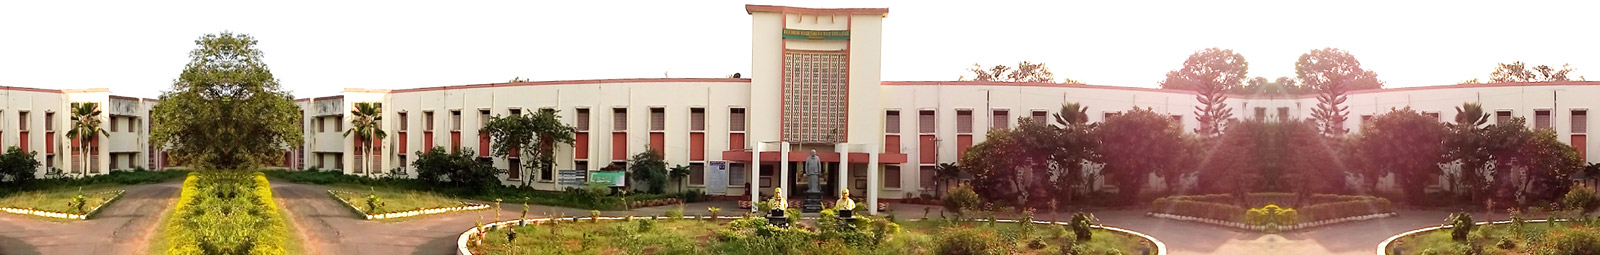 Anr College Academic